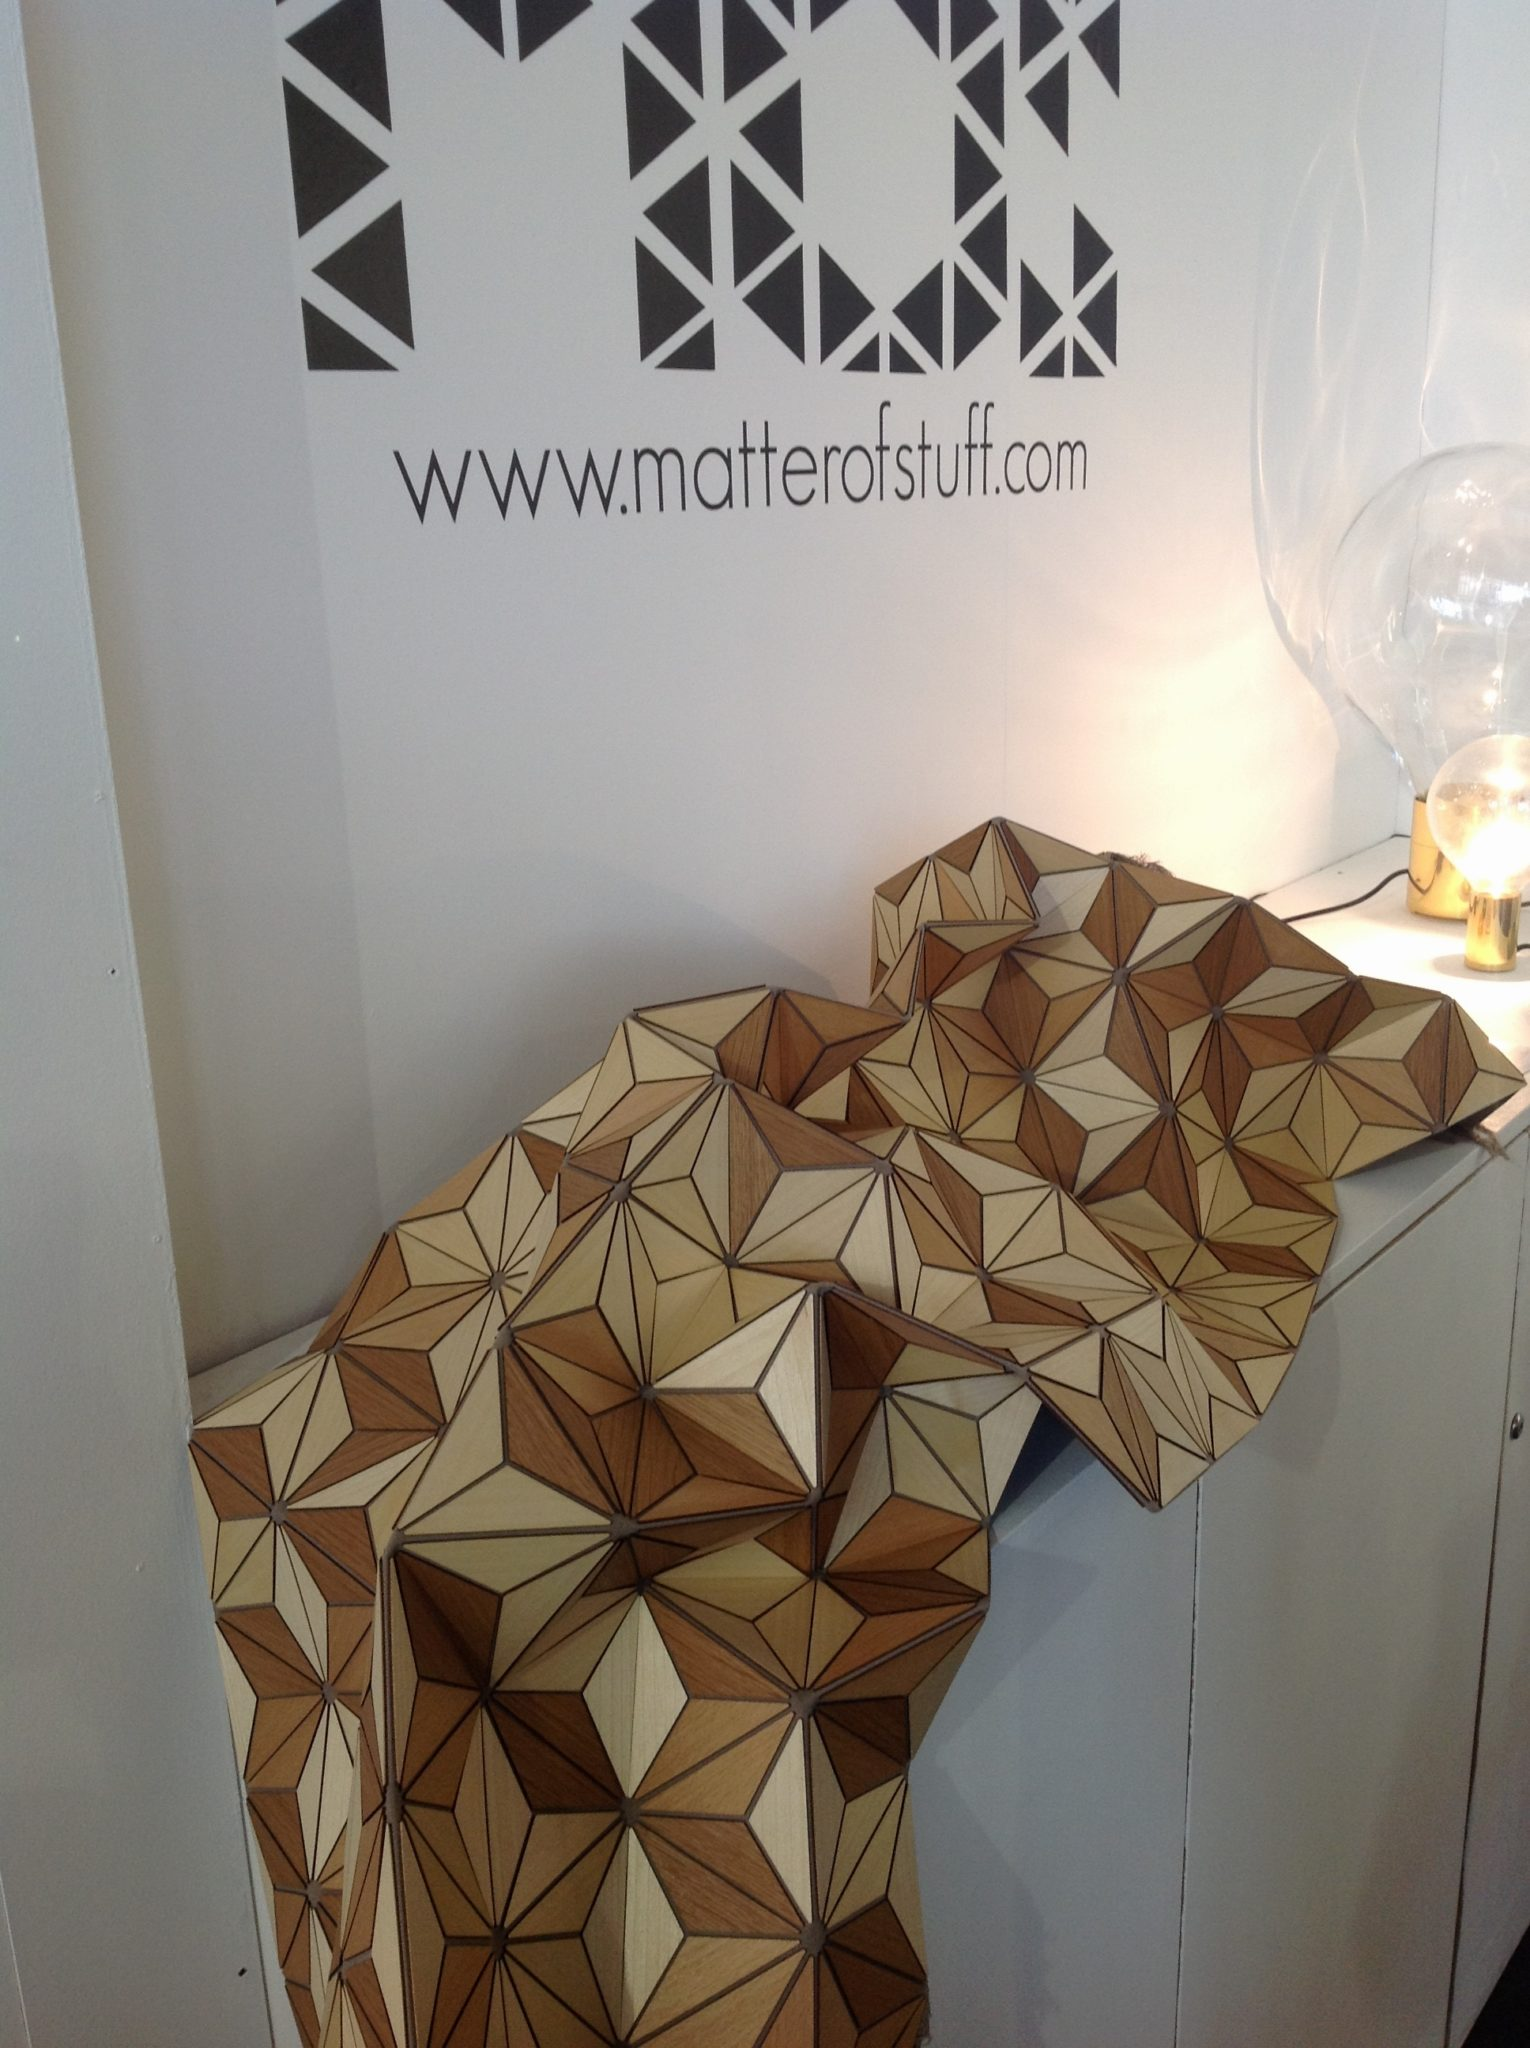 x wooden_textile_elisa_strozyk_german_design_home_decorationg_interior_ideas_projekty_ekologiczne_drewno_we_wnetrzach_forelements_blog